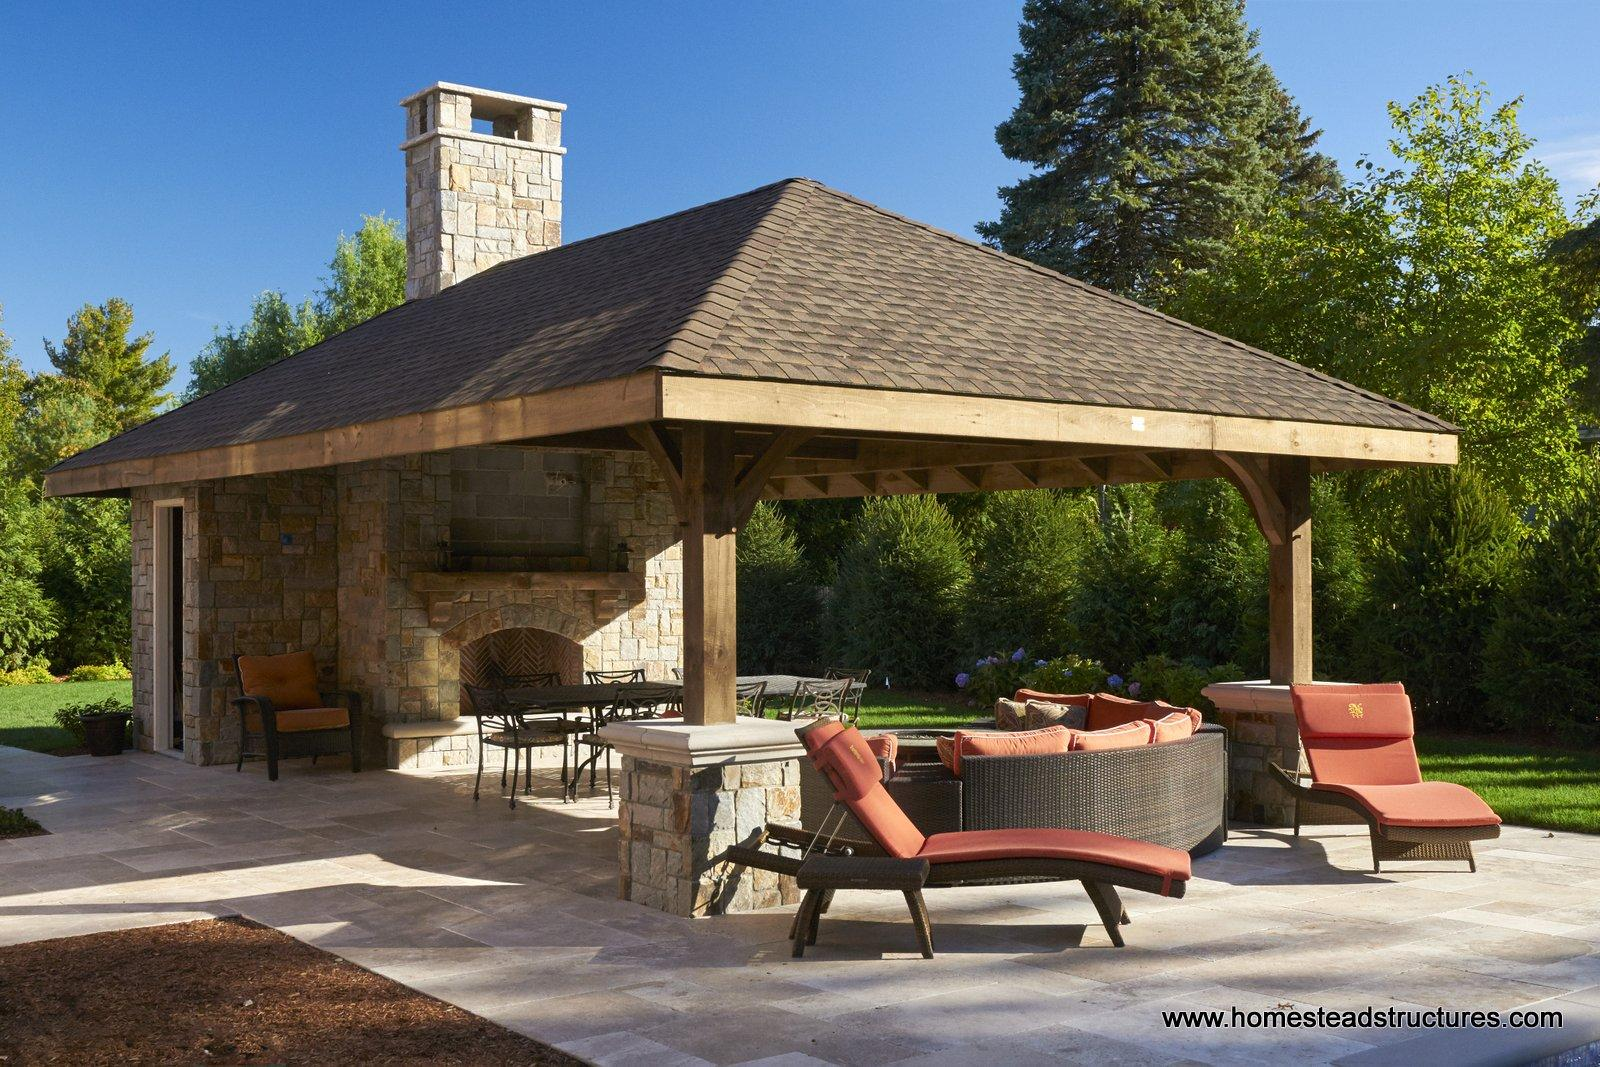 Timber Frame Pavilions | Photos | Homestead Structures